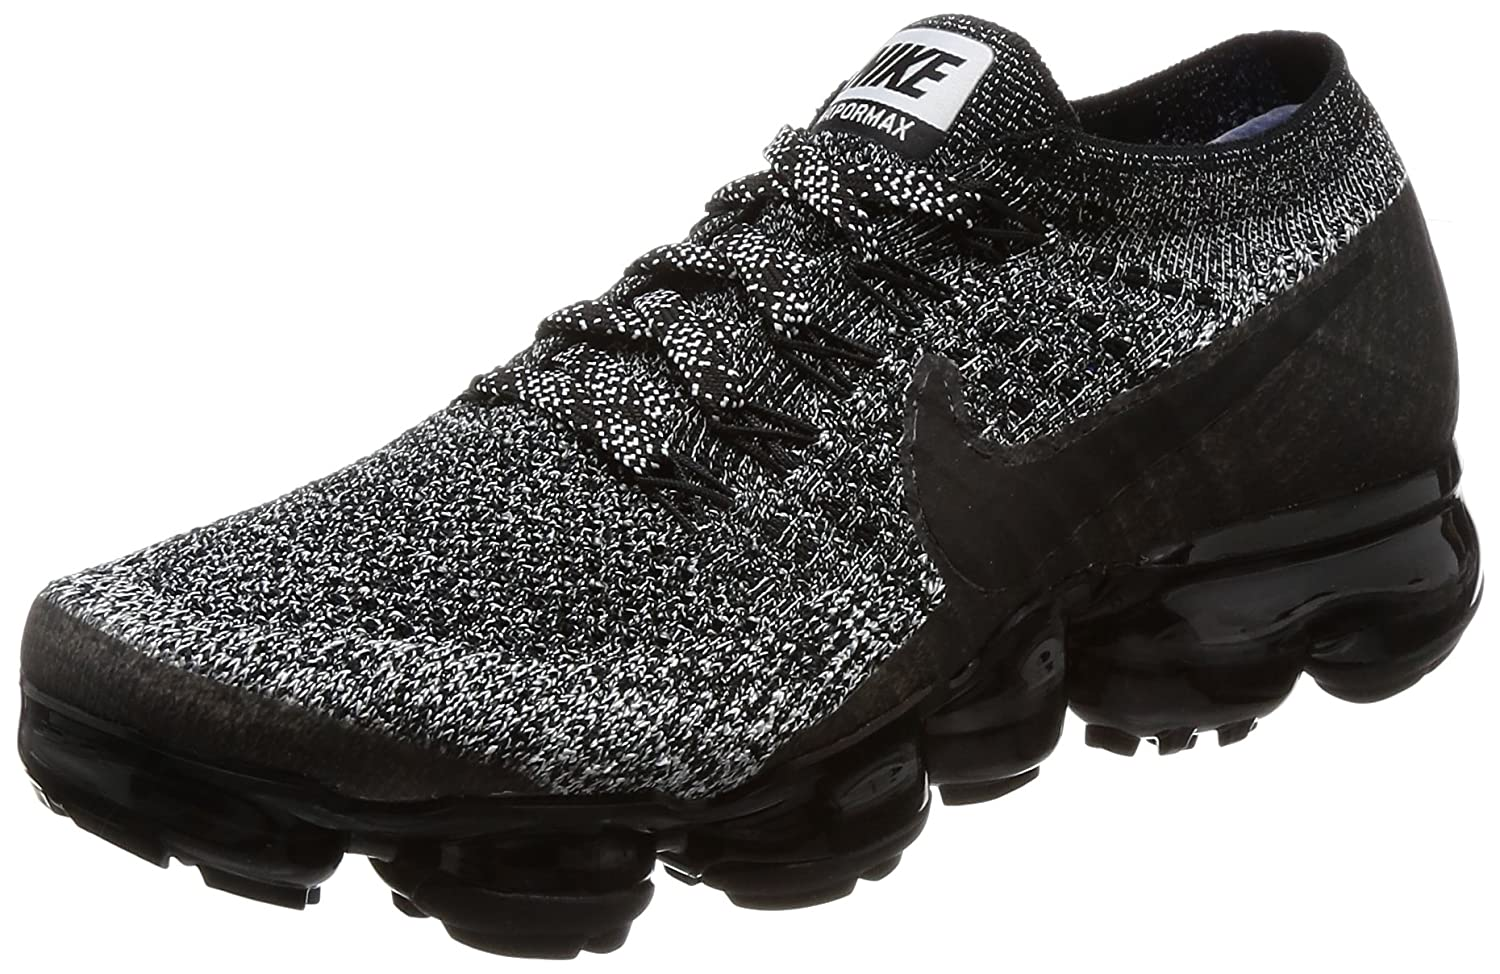 quality design f1f01 cb81b Nike Womens Air Vapormax Flyknit Running Trainers 849557 Sneakers Shoes